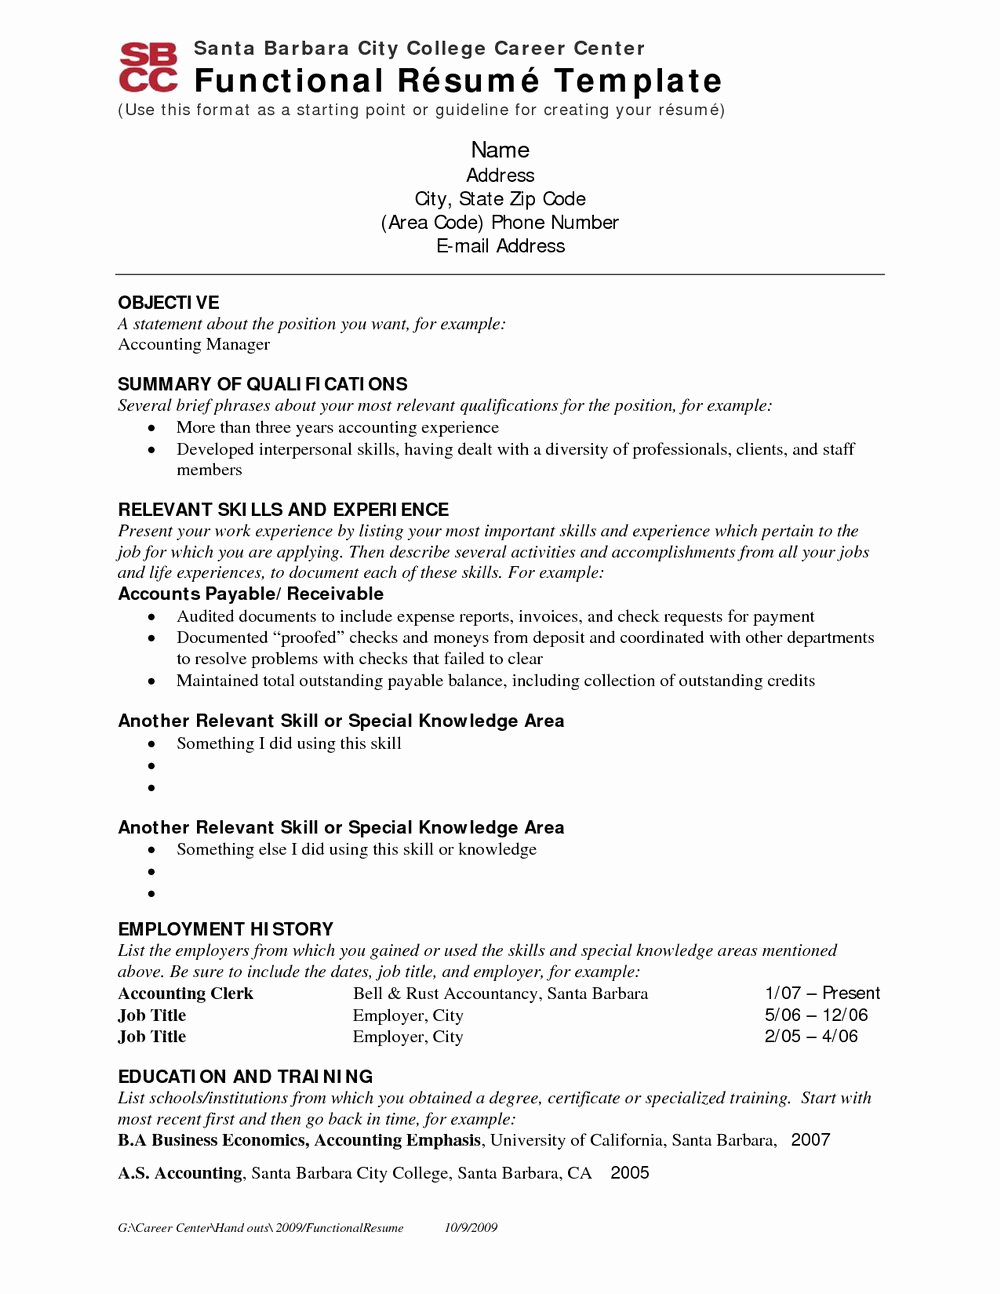 Functional Resume Template Free Download Resumes 297